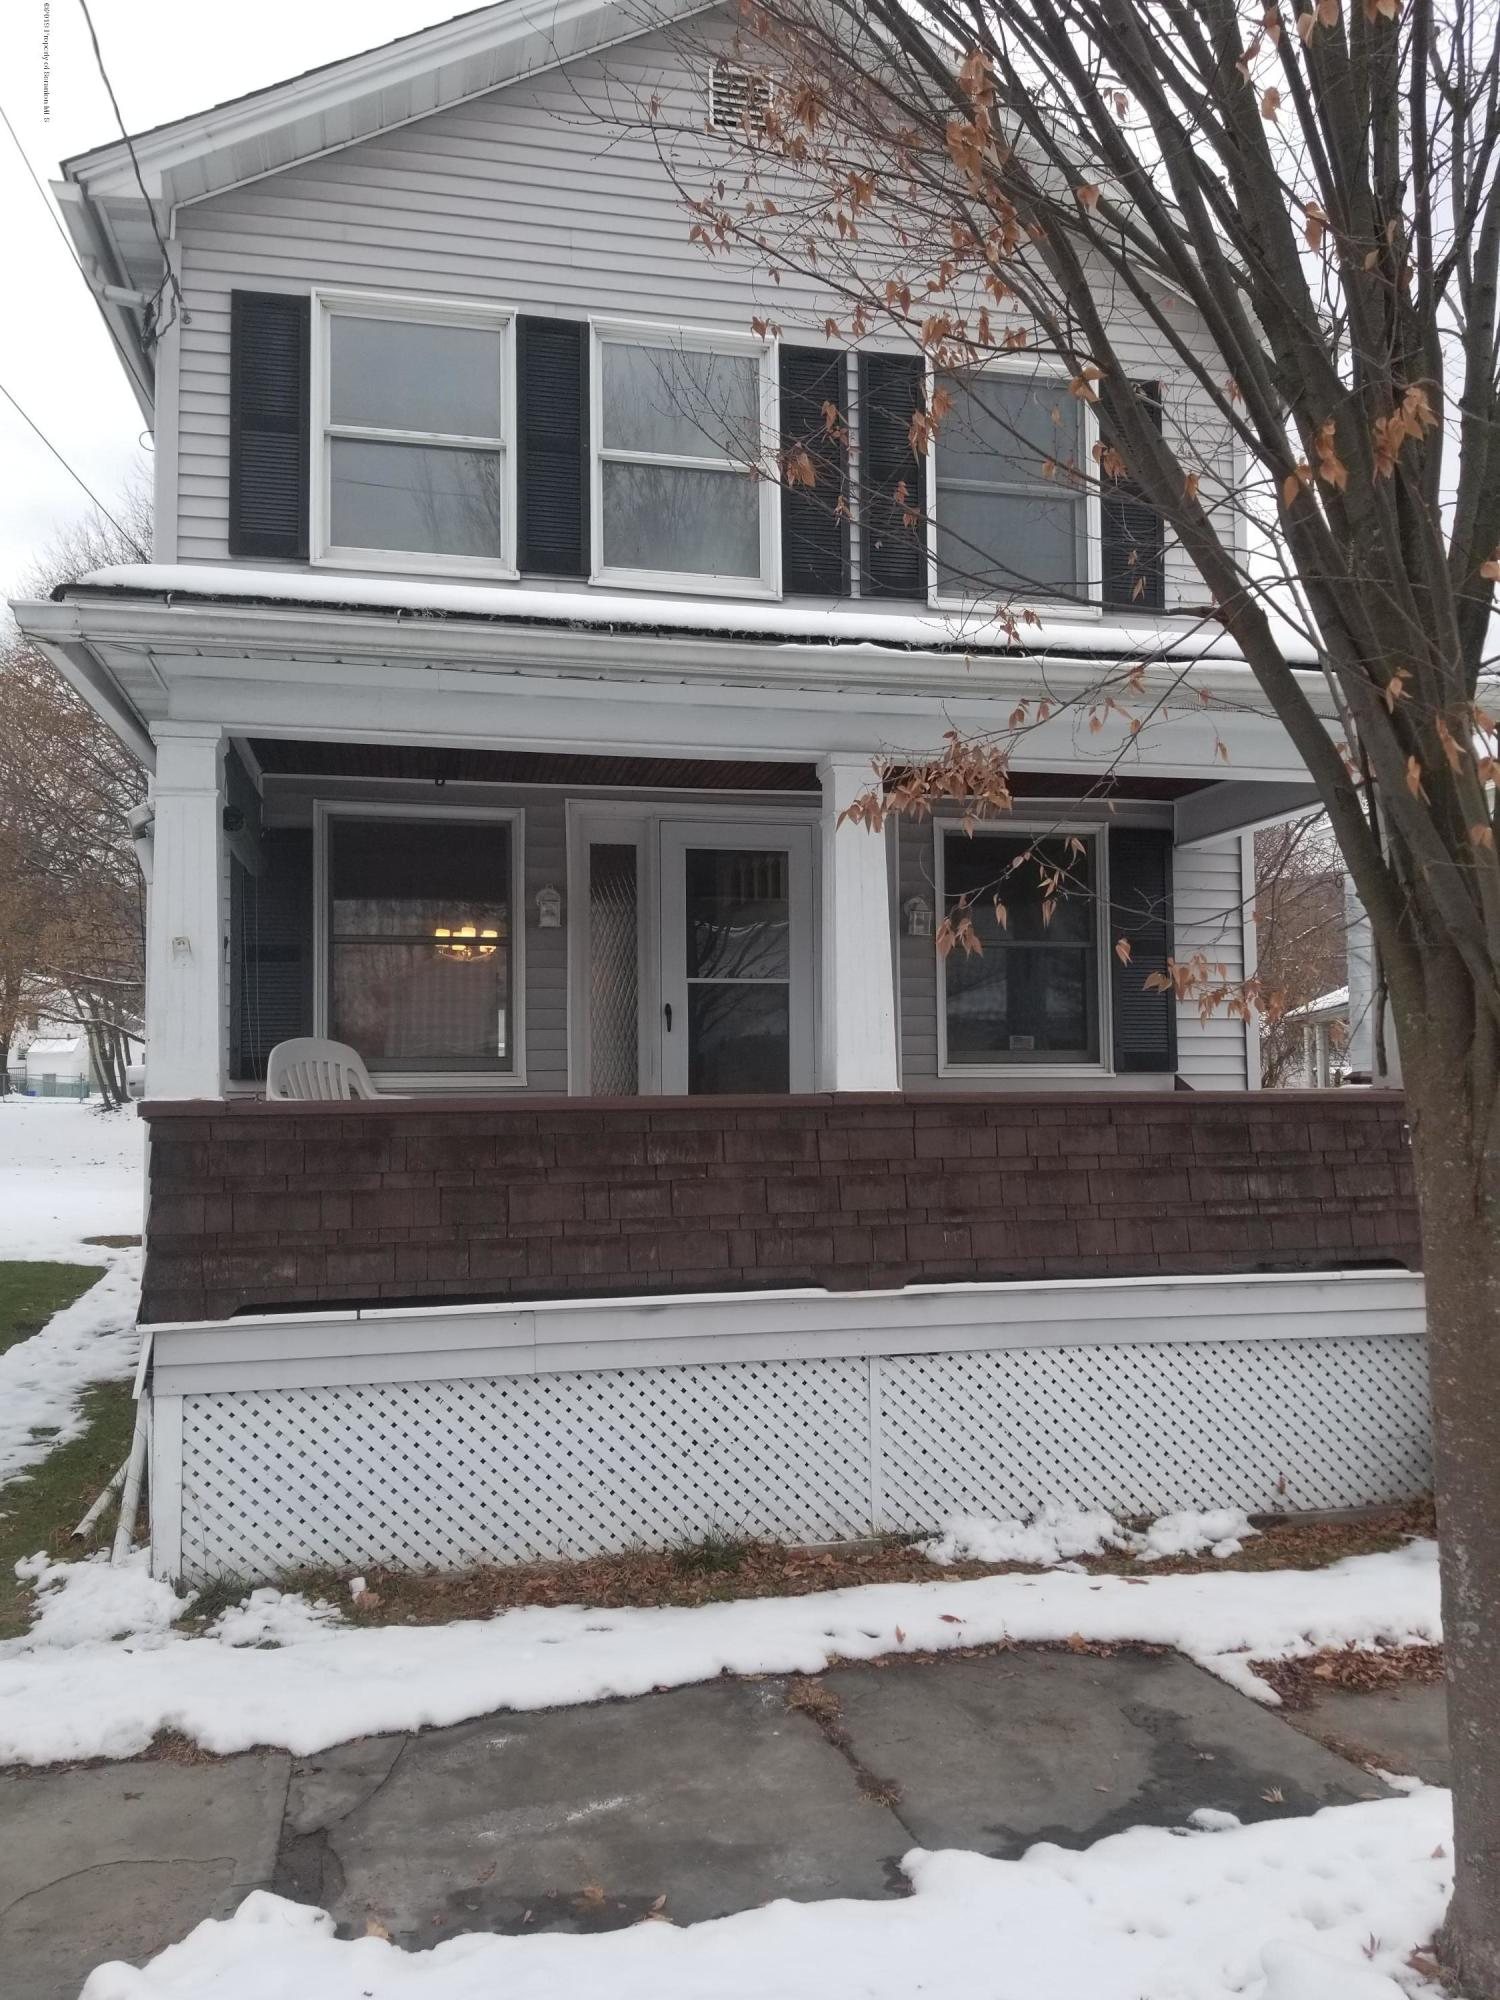 713 Madison Ave, Jermyn, Pennsylvania 18433, 3 Bedrooms Bedrooms, 5 Rooms Rooms,1 BathroomBathrooms,Single Family,For Sale,Madison,19-5671